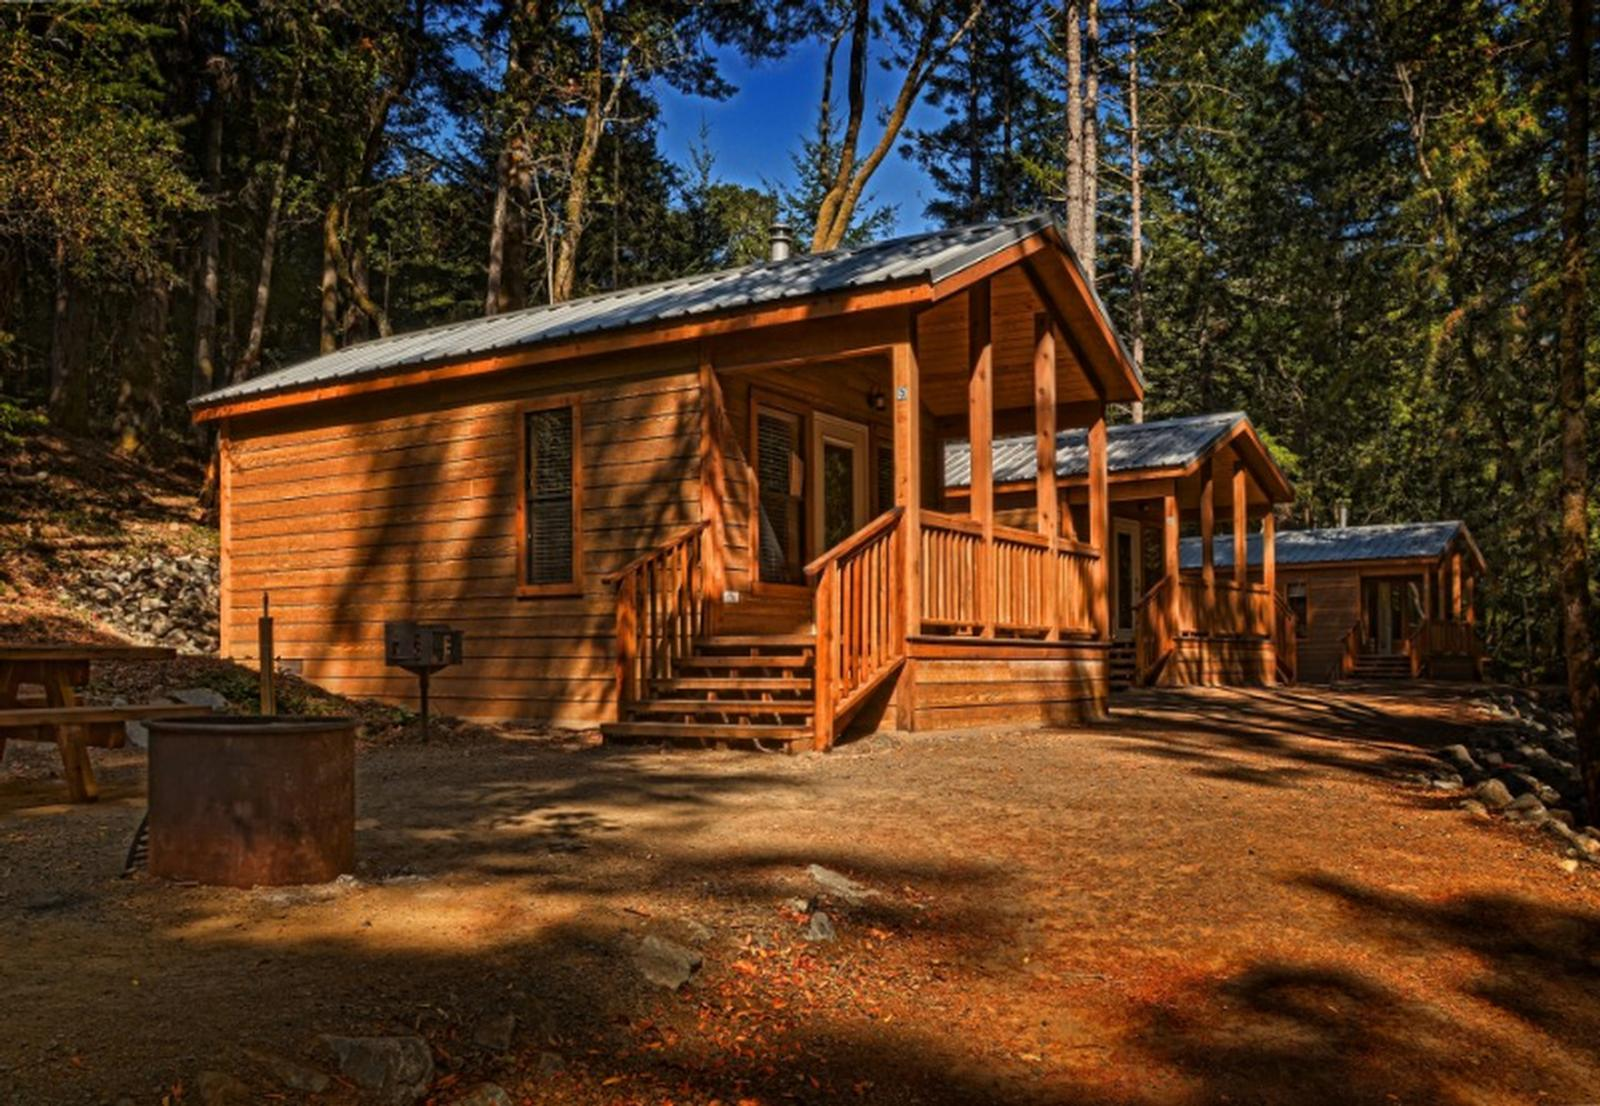 Cavco Cabin - Park Models - The Finest Quality Park Models